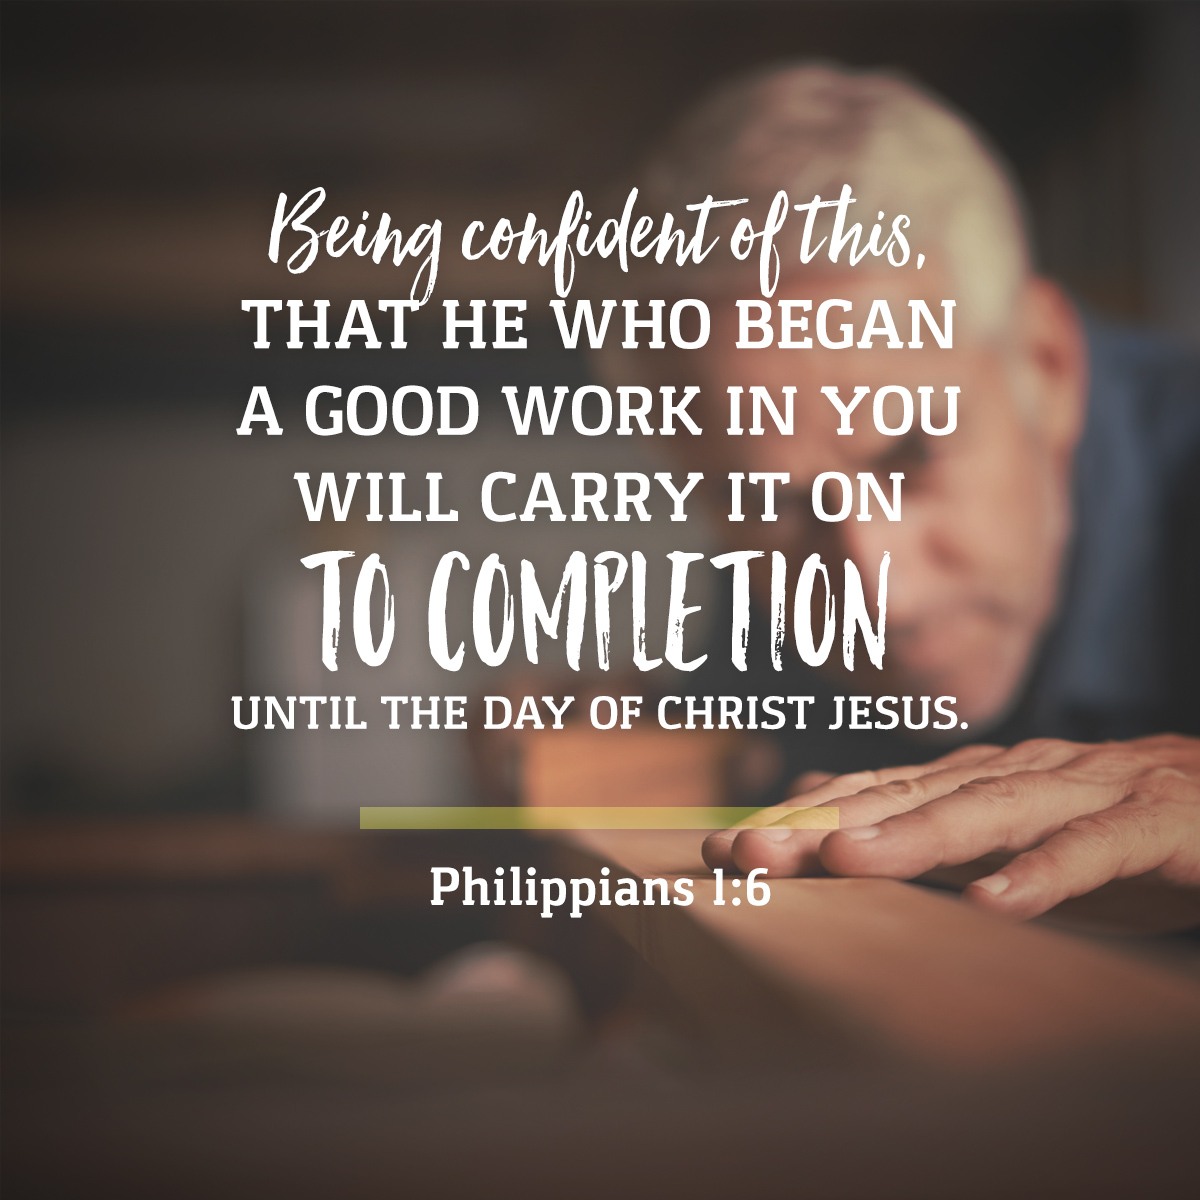 philippians 1 6 daily verse kcis 630